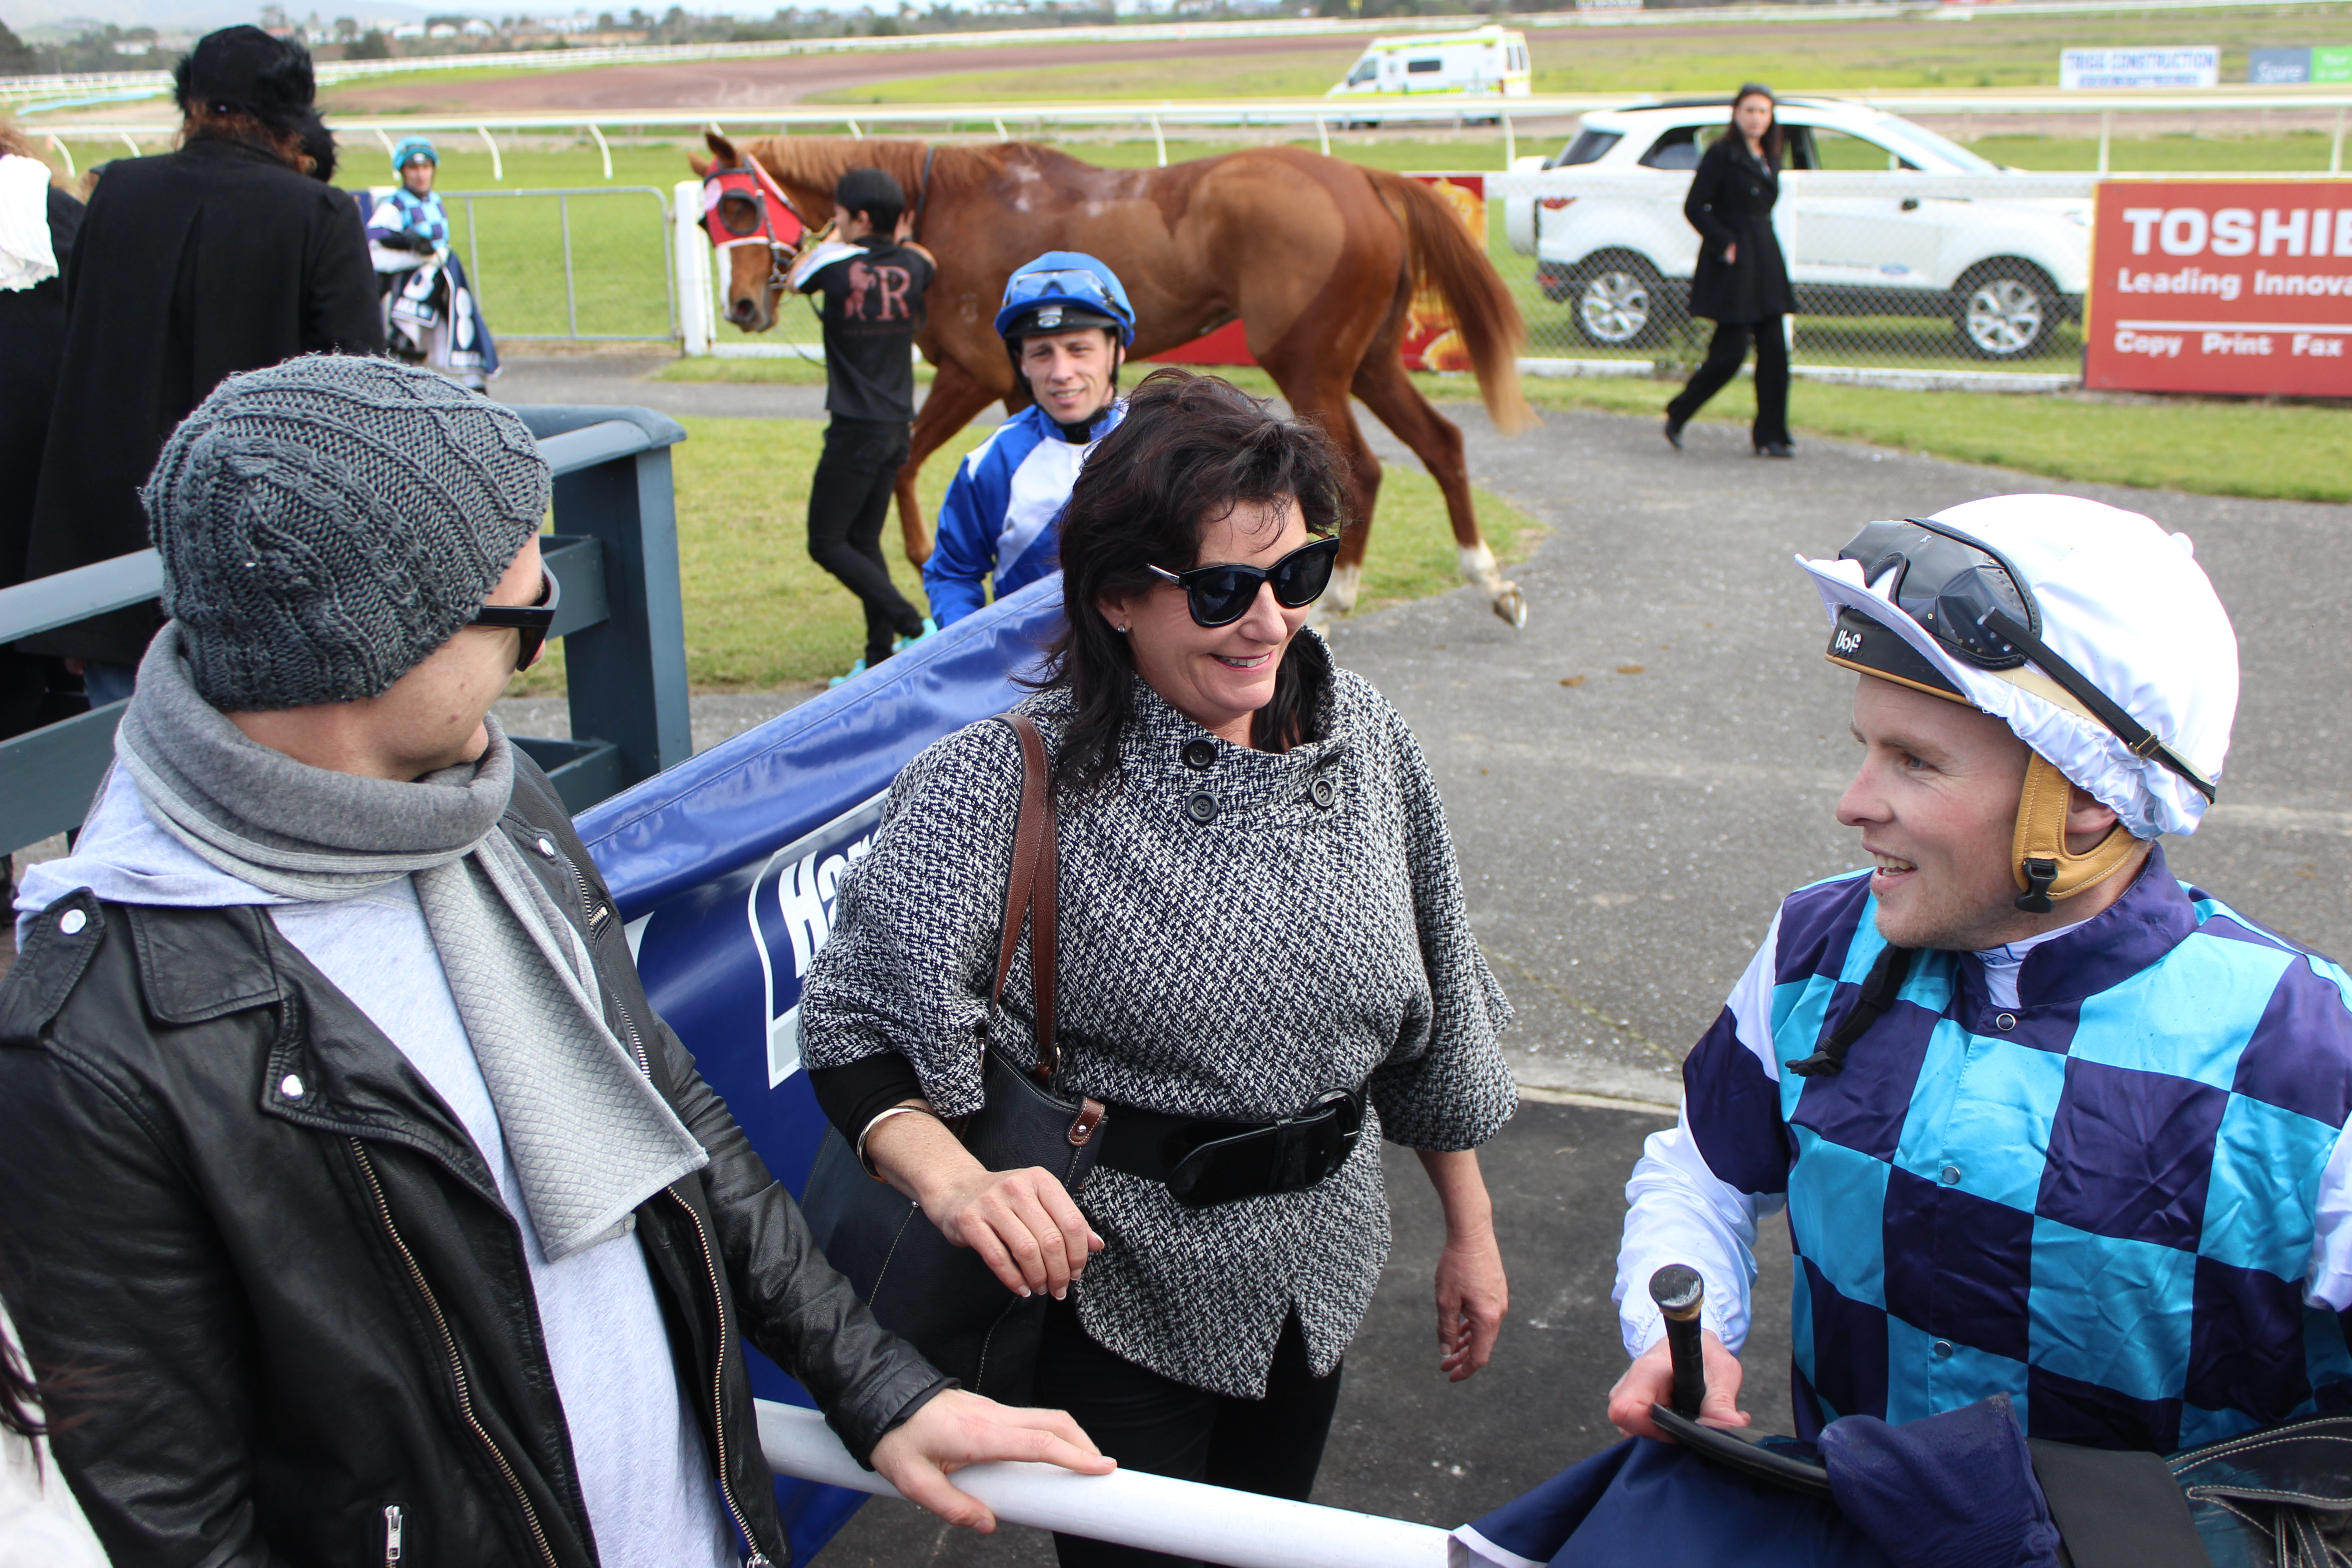 WINNERS GALORE - LOGAN RACING HAVE 15 STARTERS AT RUAKAKA ON SATURDAY 29TH AUGUST AND 1 IN AUSTRALIA